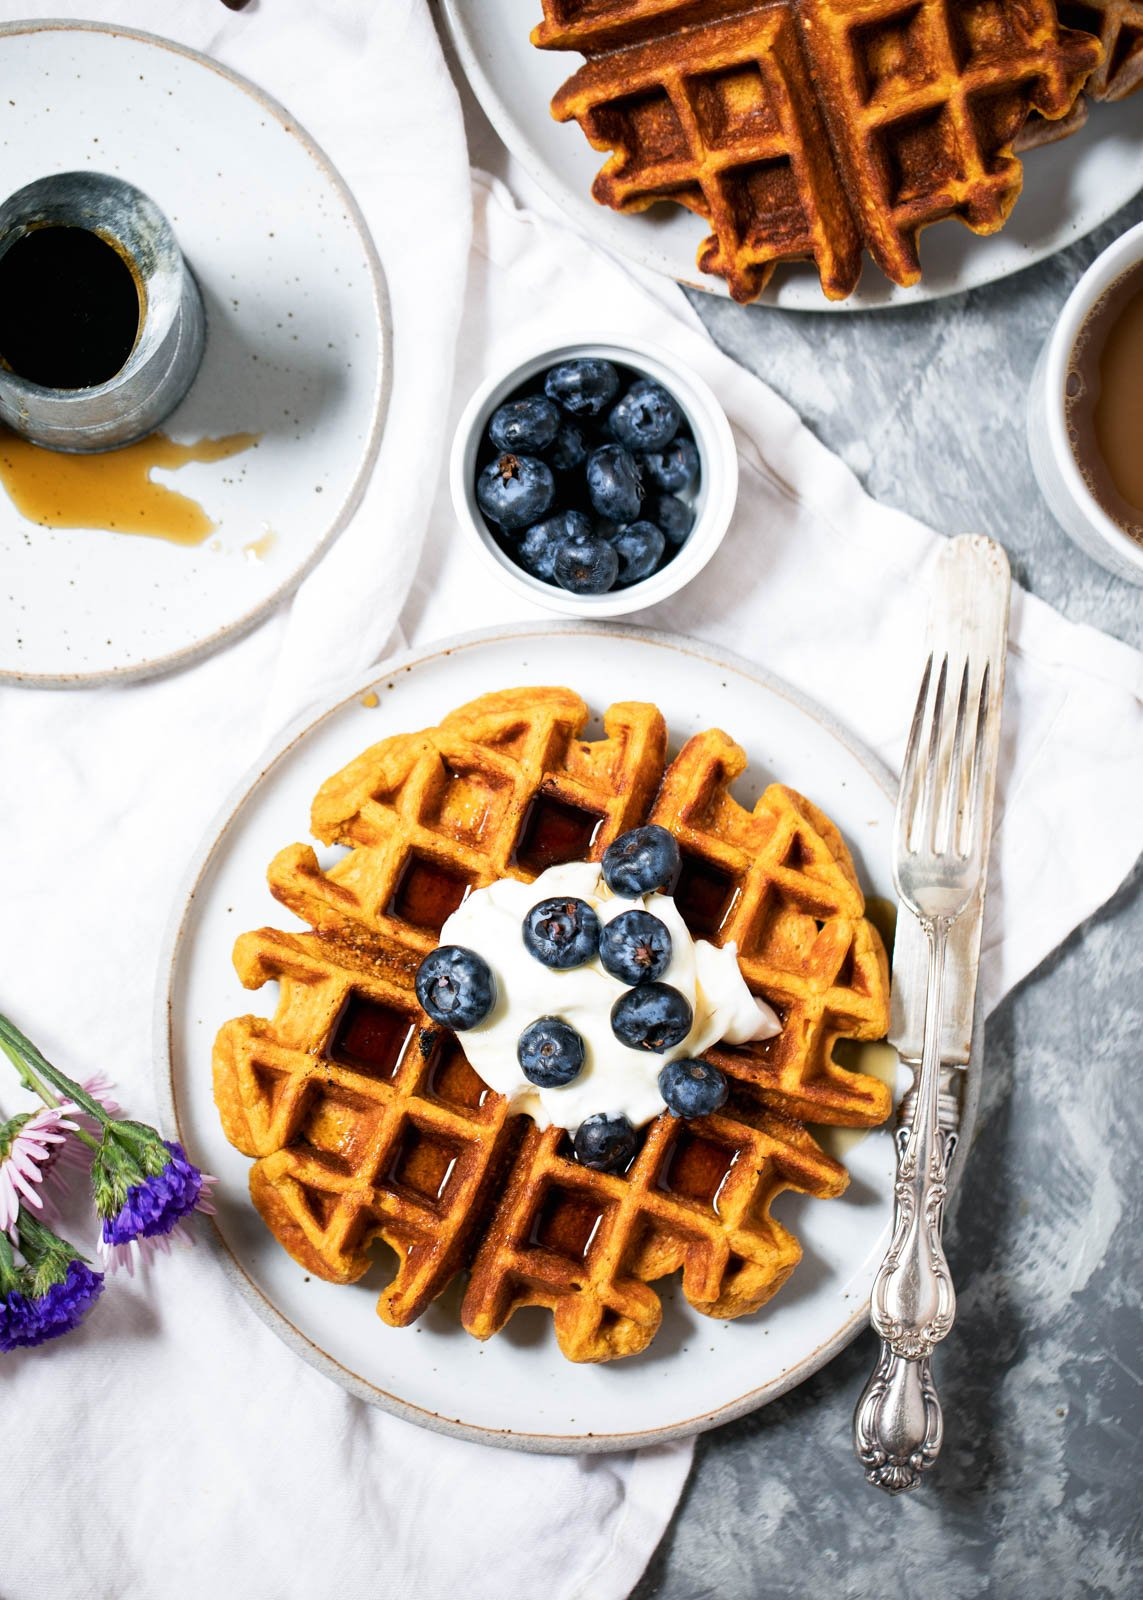 Sweet potato protein waffles on a plate with blueberries